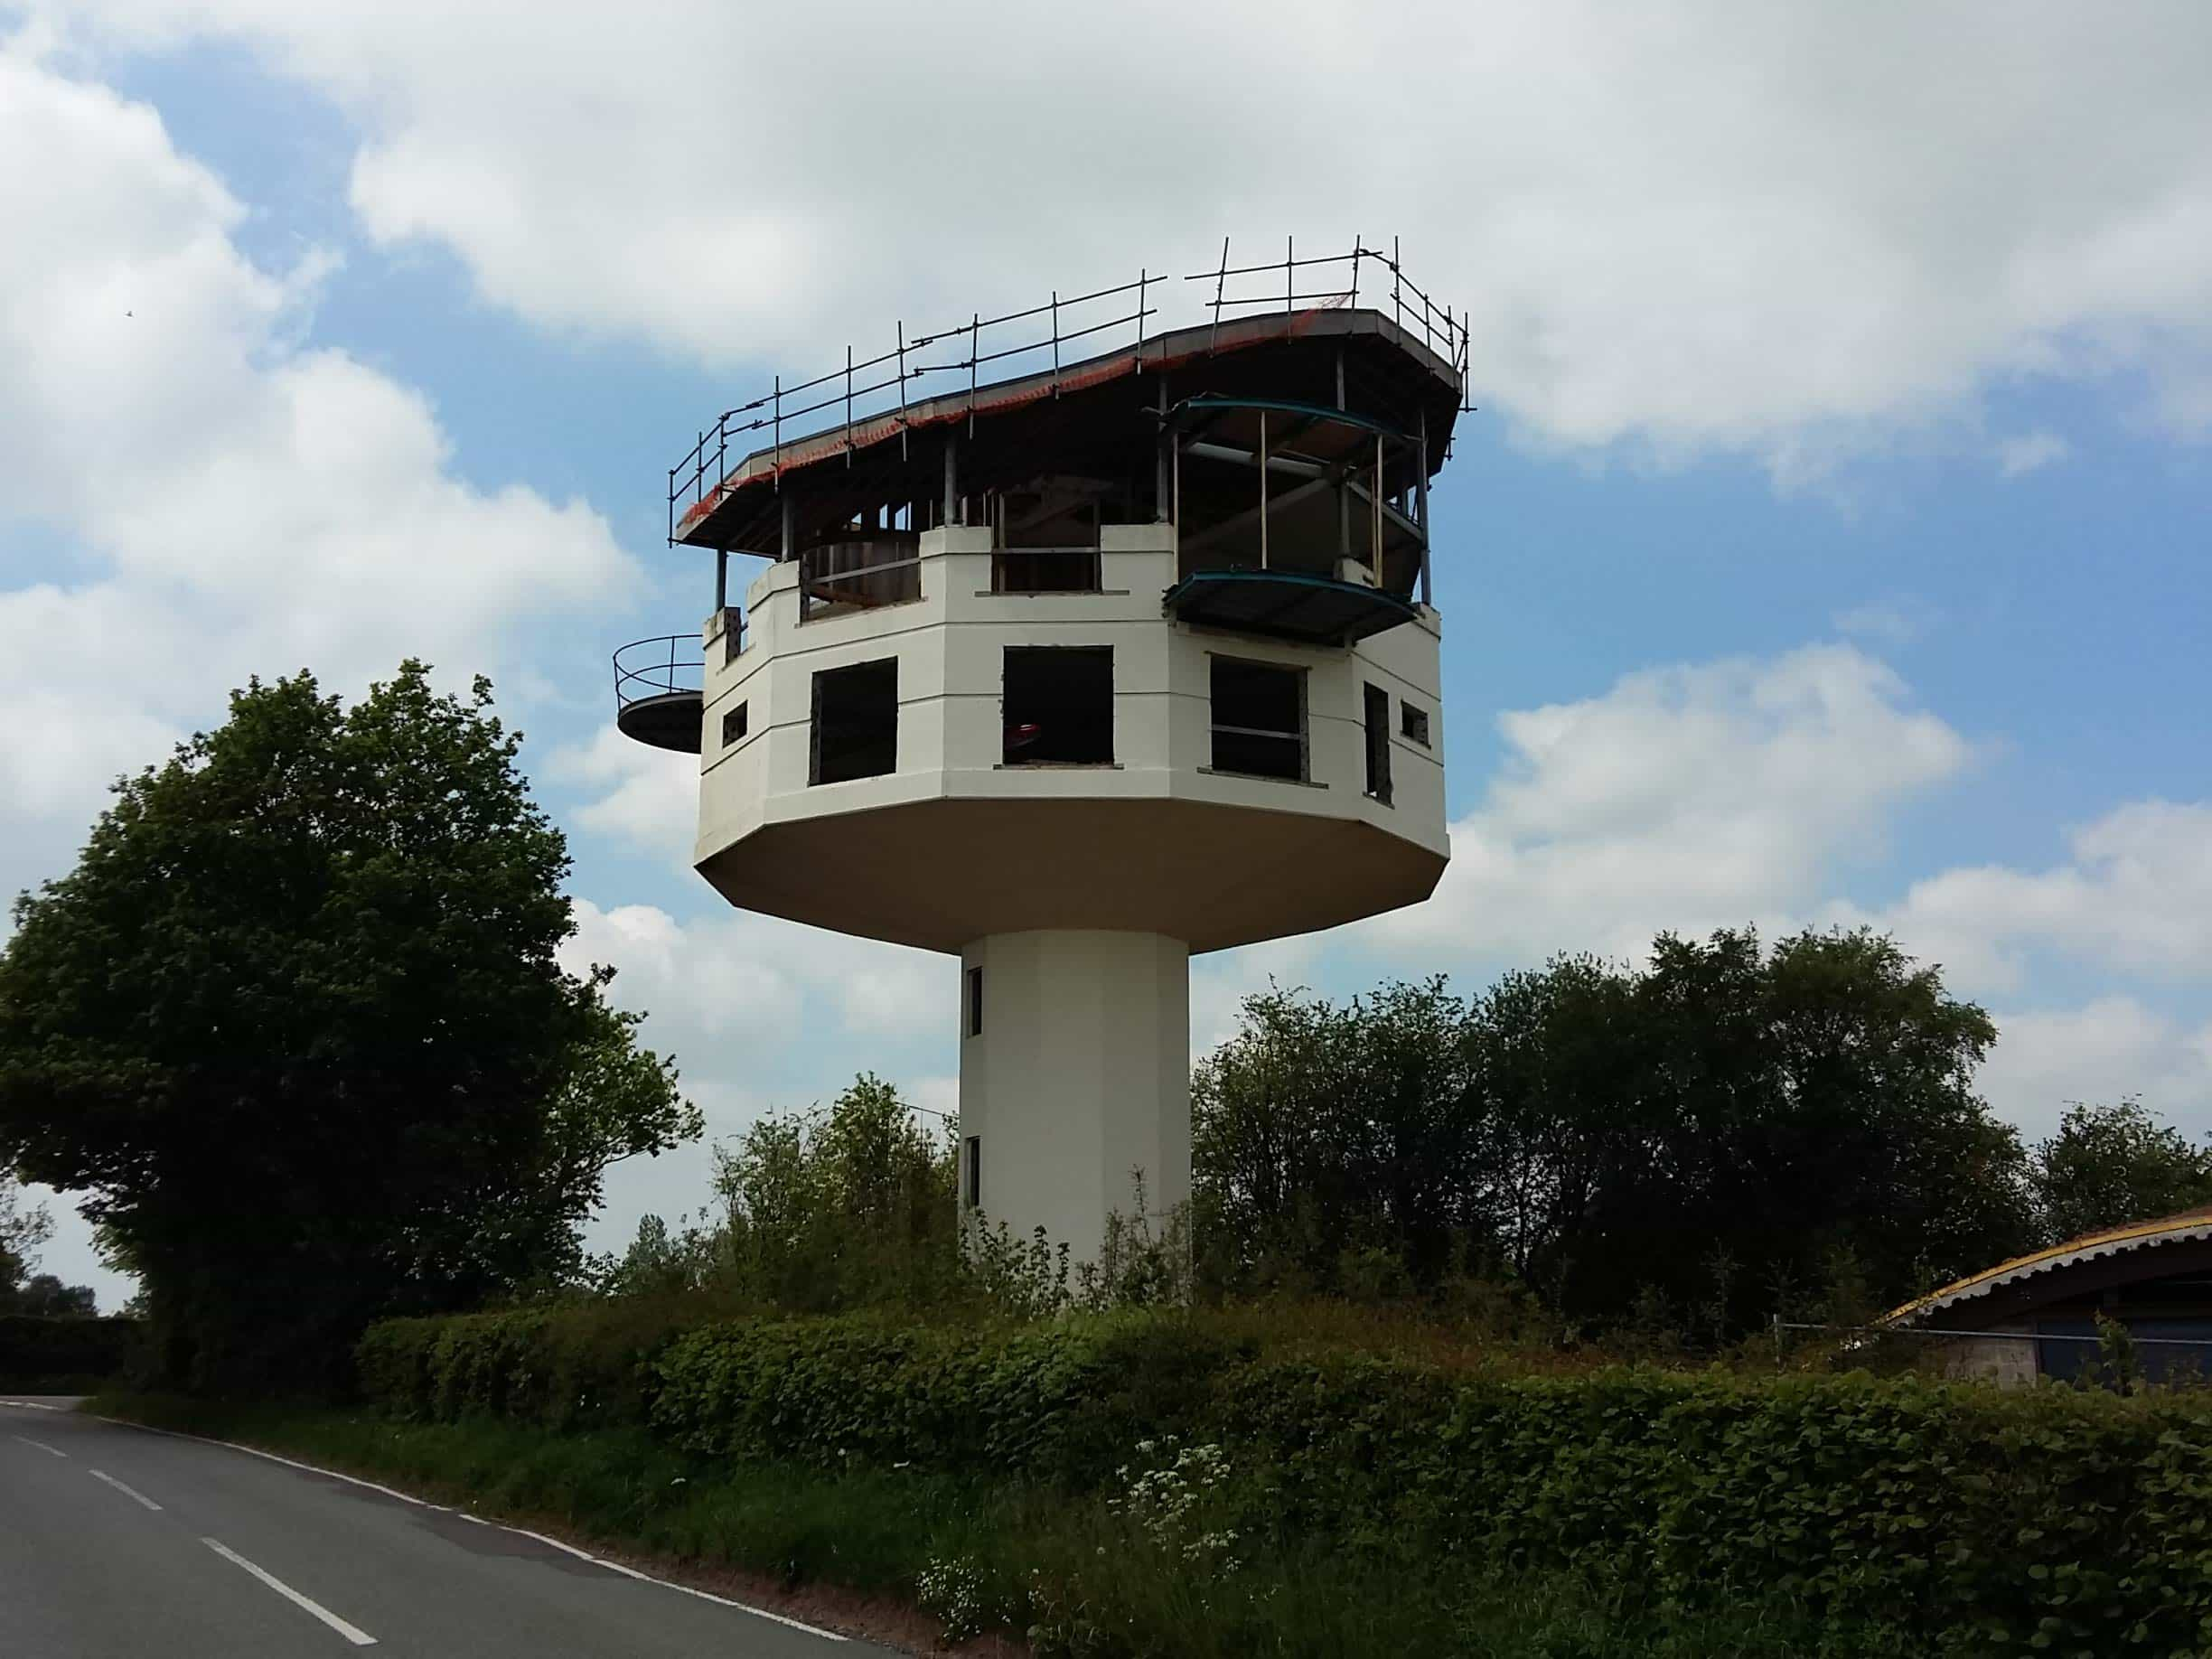 Vince's Water Tower